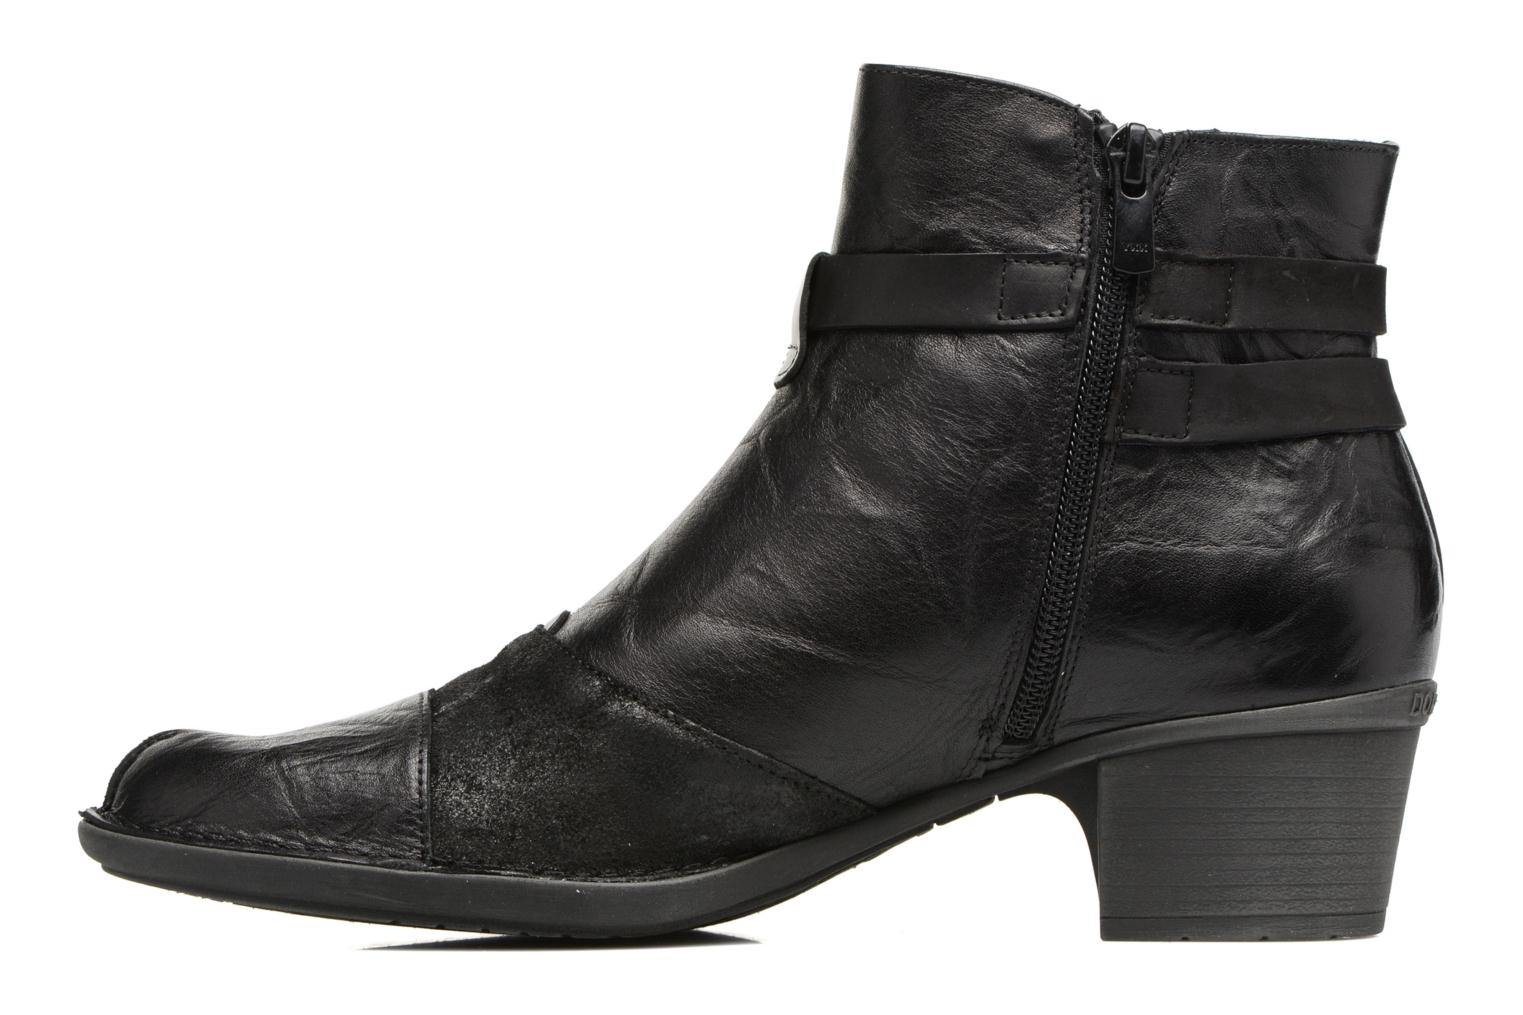 Bottines et boots Dorking Dalma 7371 Noir vue face